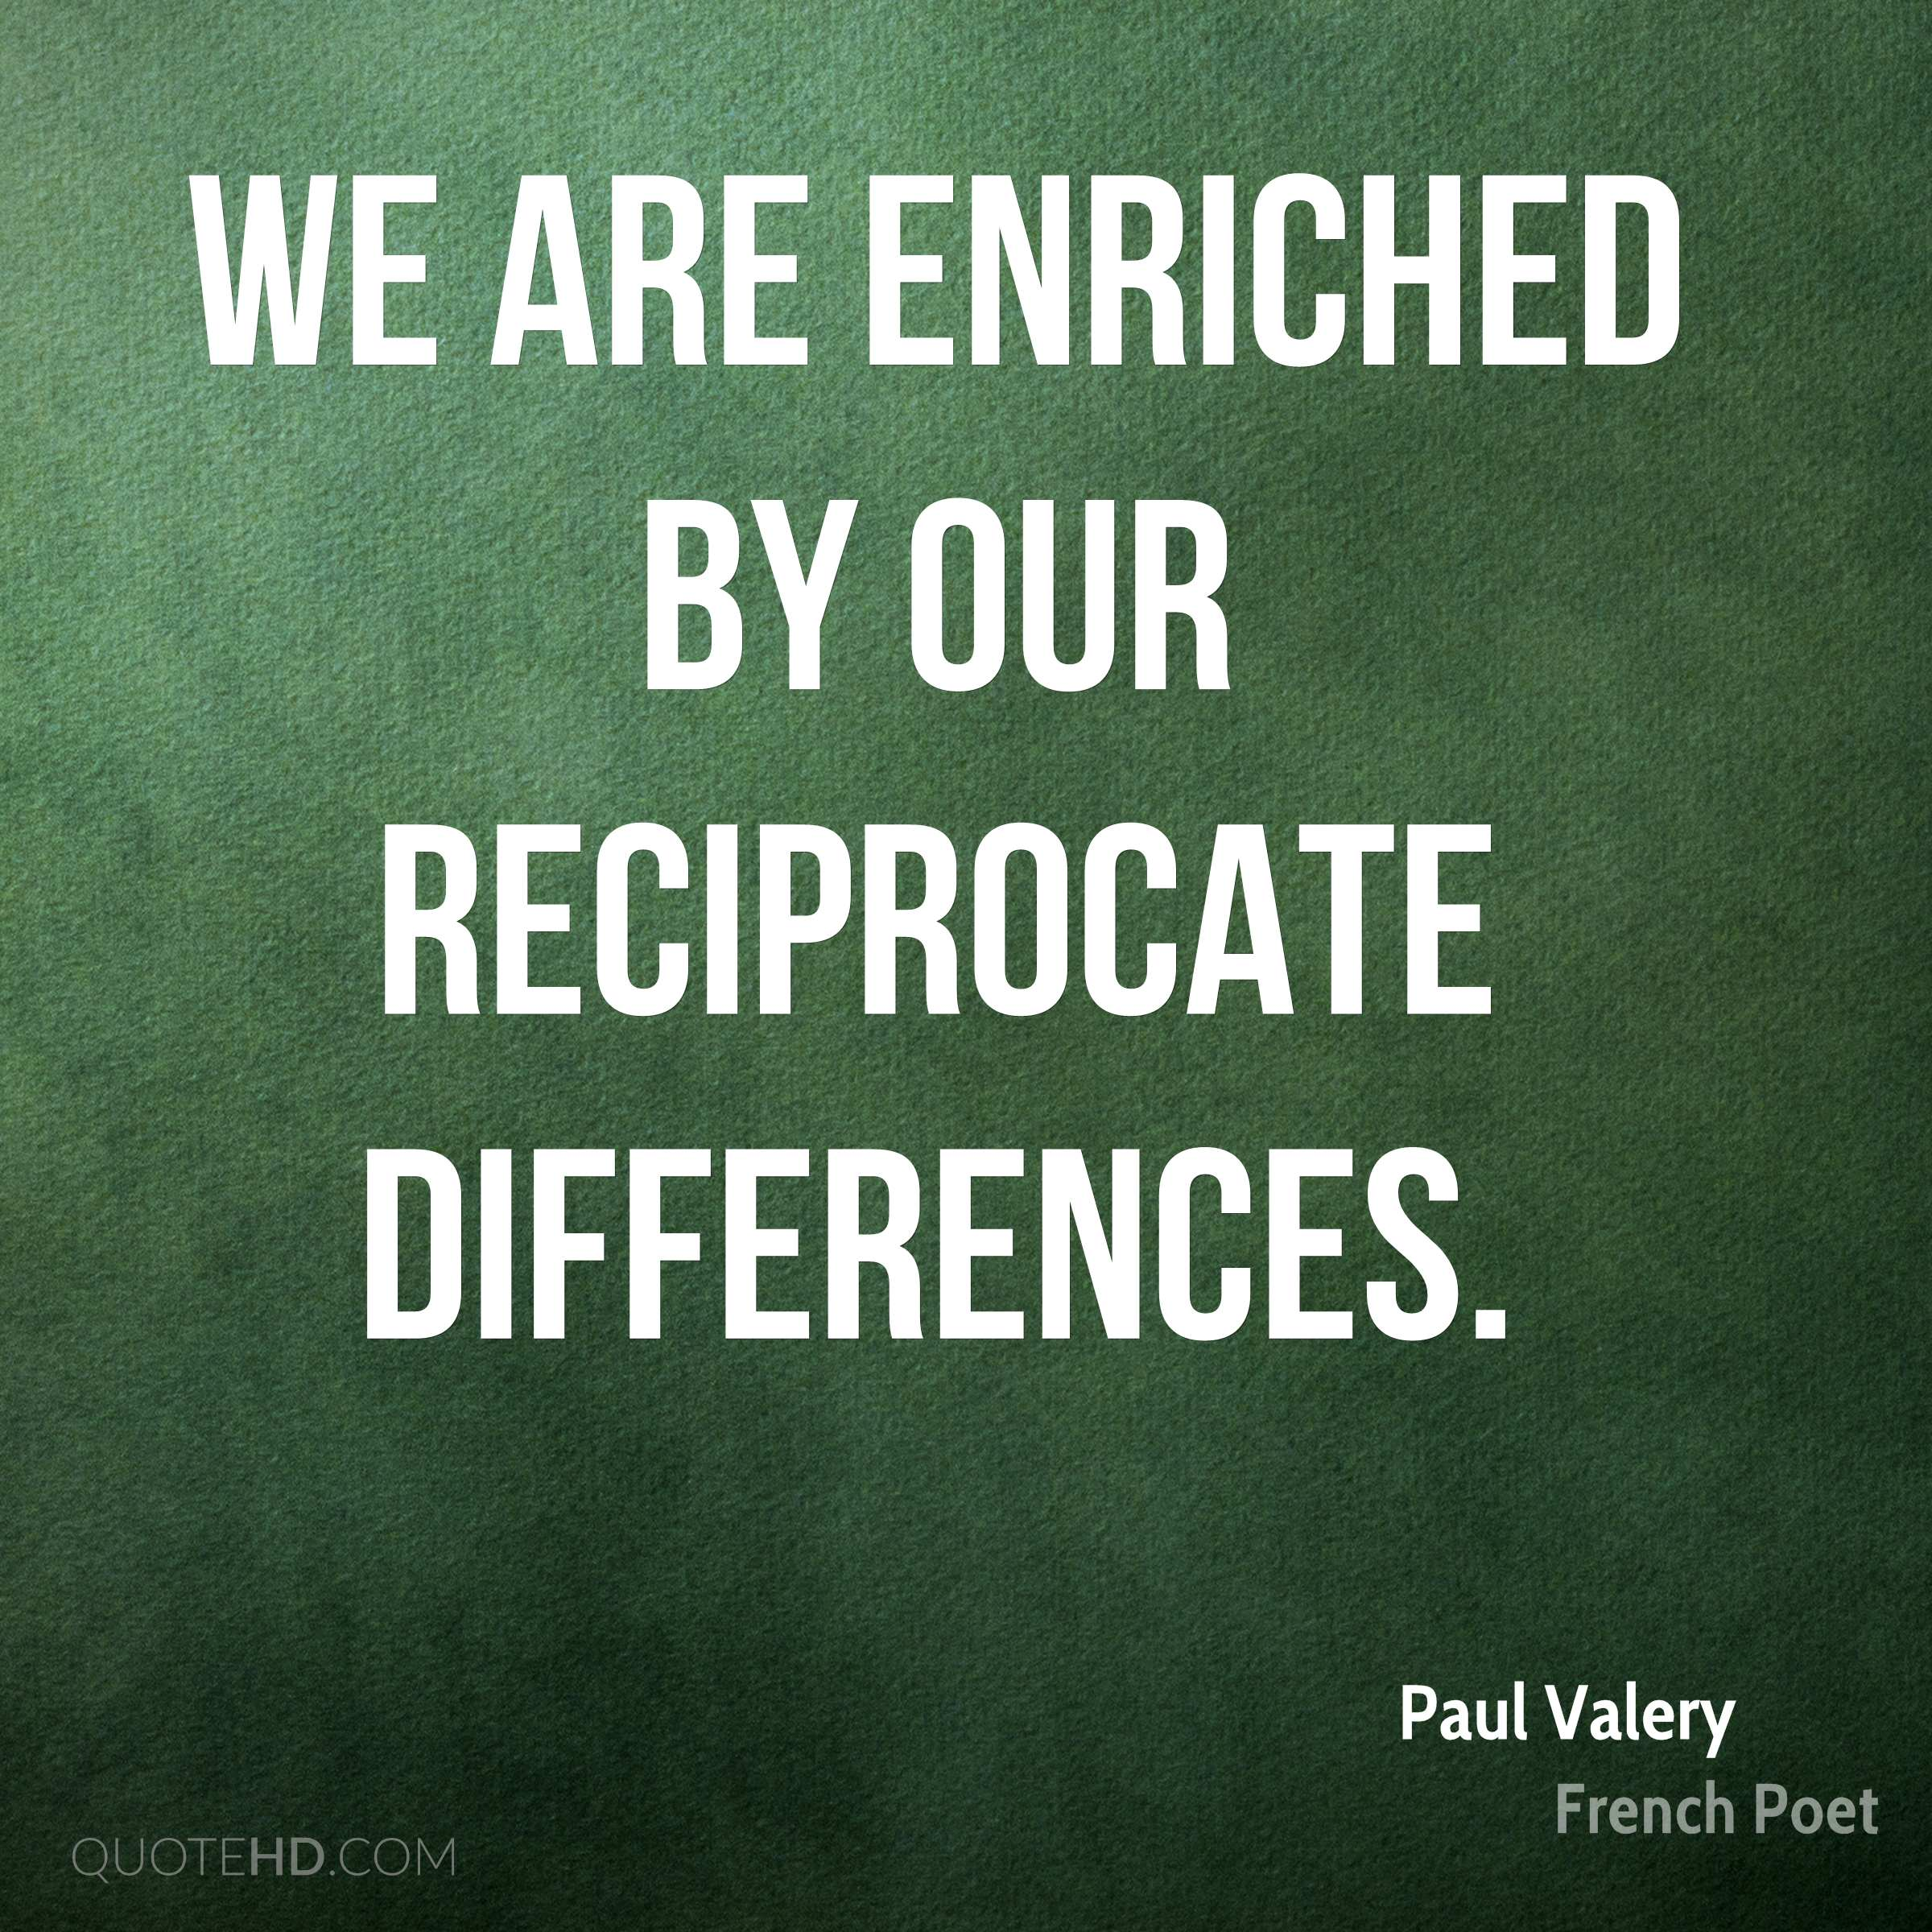 We are enriched by our reciprocate differences.